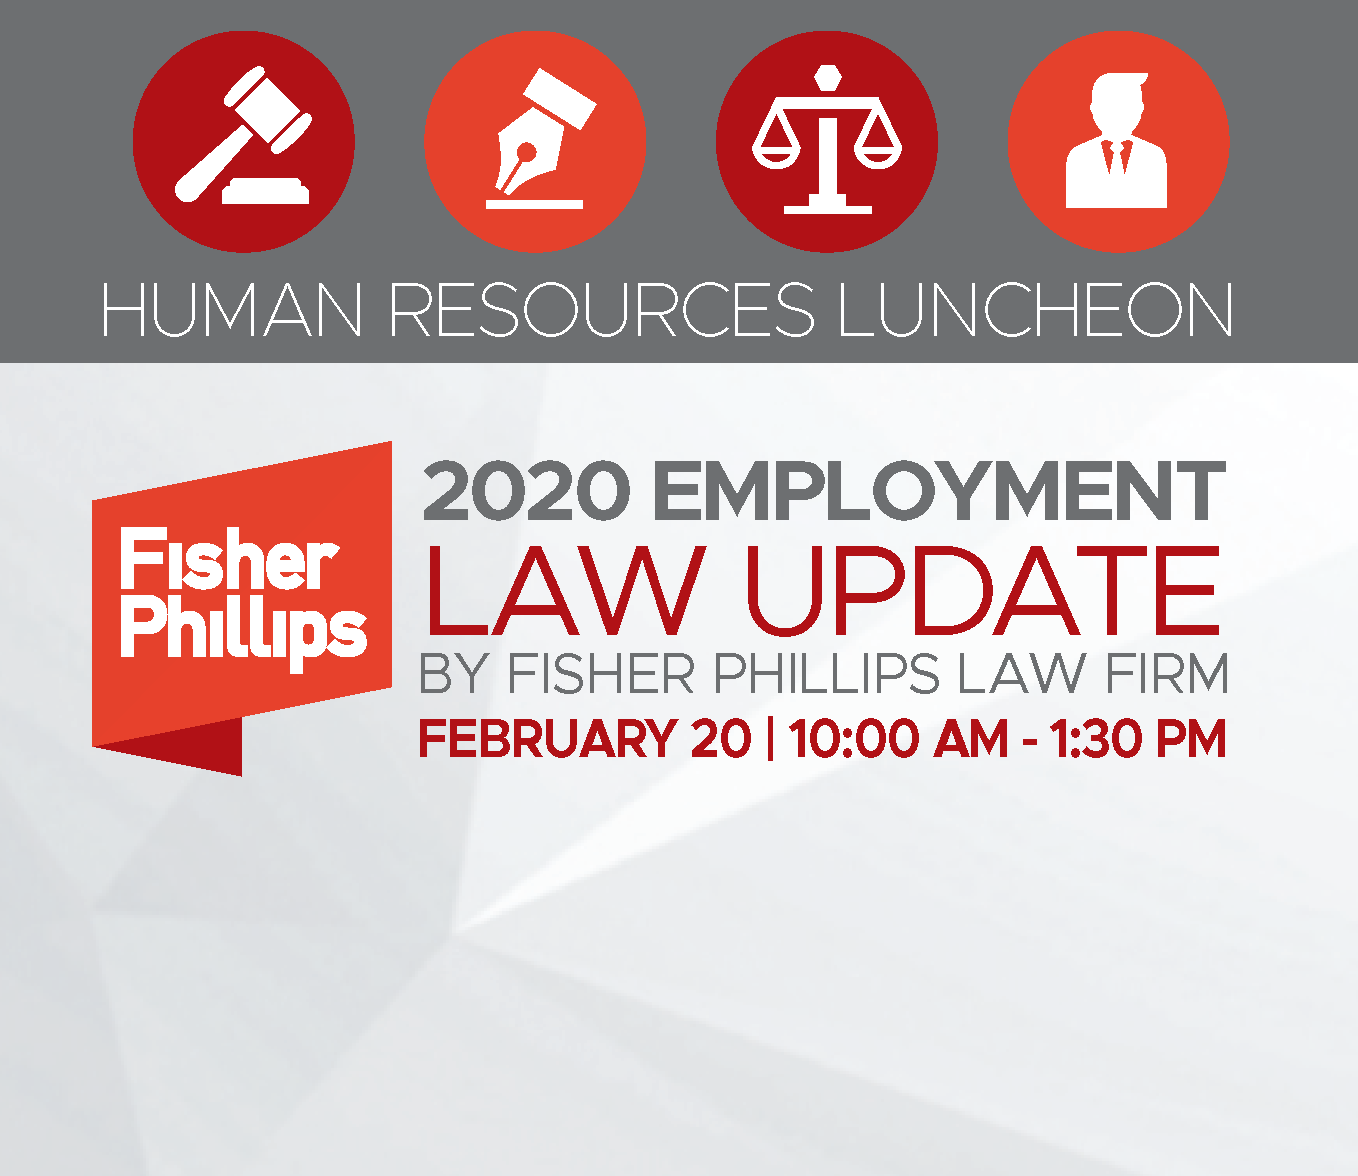 Special Extended Human Resources Luncheon | 2020 Employment Law Update